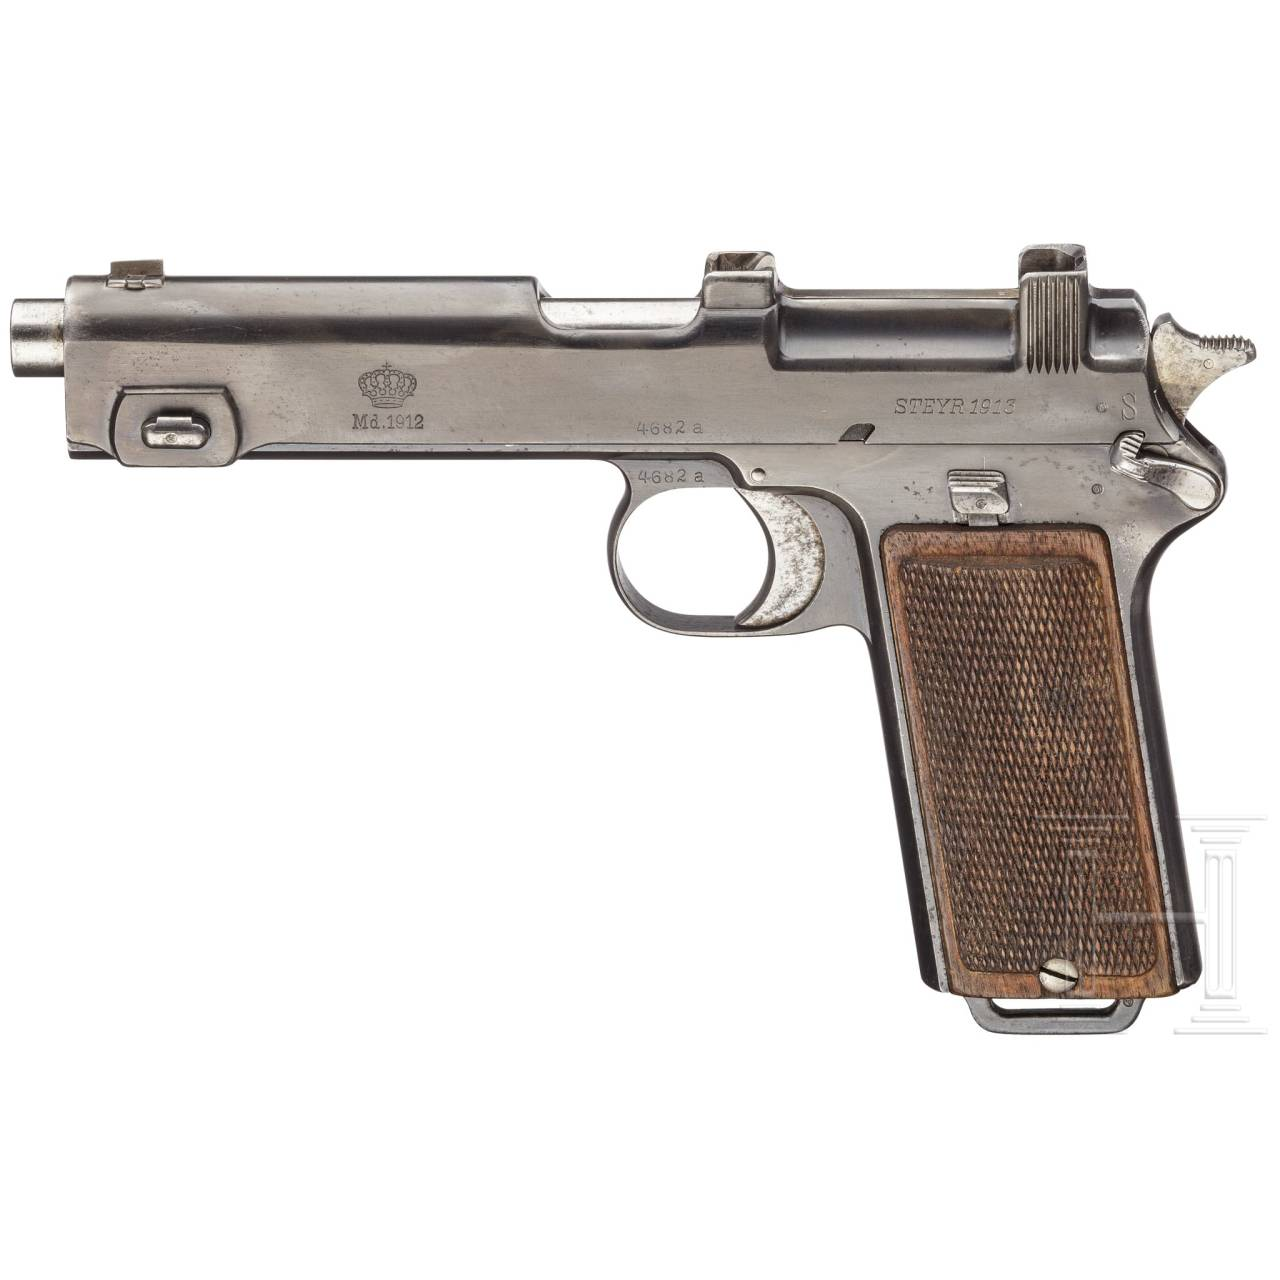 A Steyr pistol M1912 for Romania